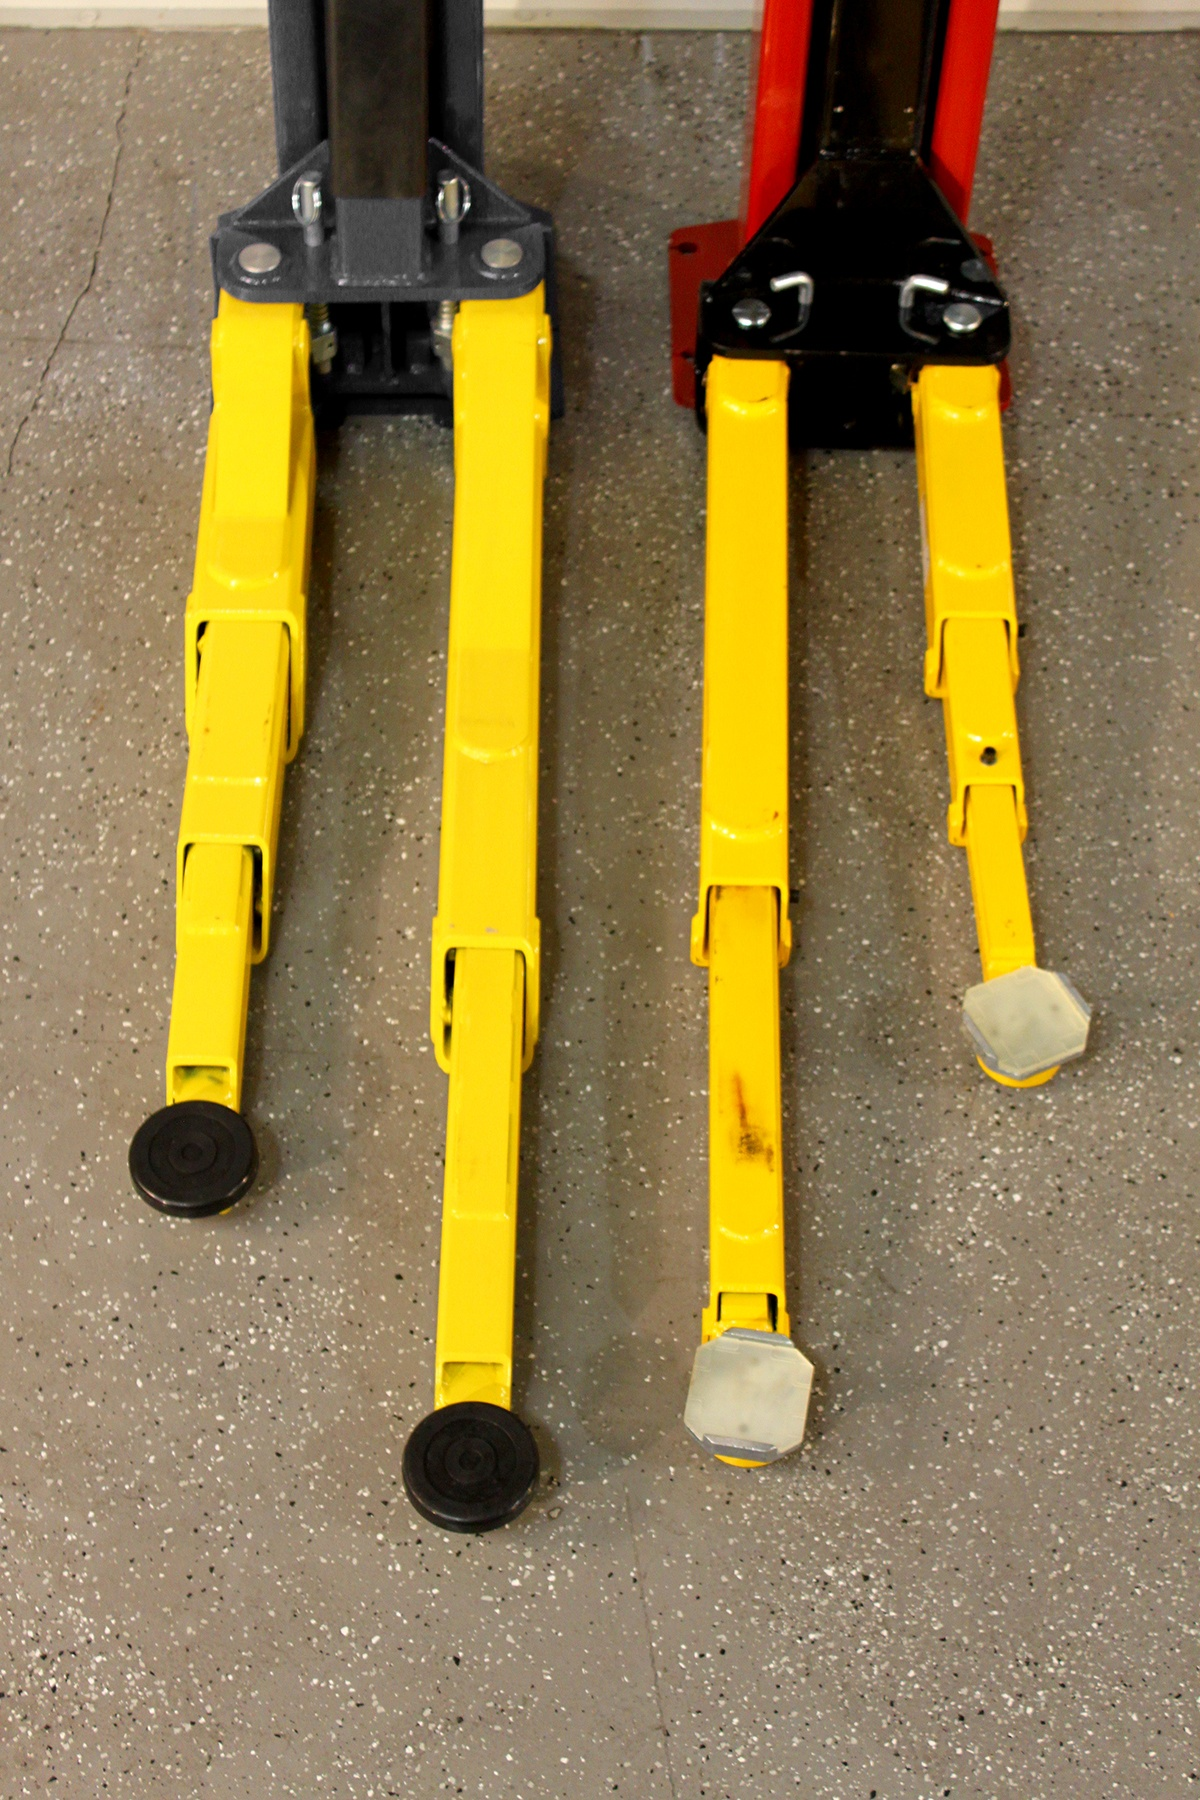 BendPak Two-Post Hoist Compared to Challenger Lift Arms Extended